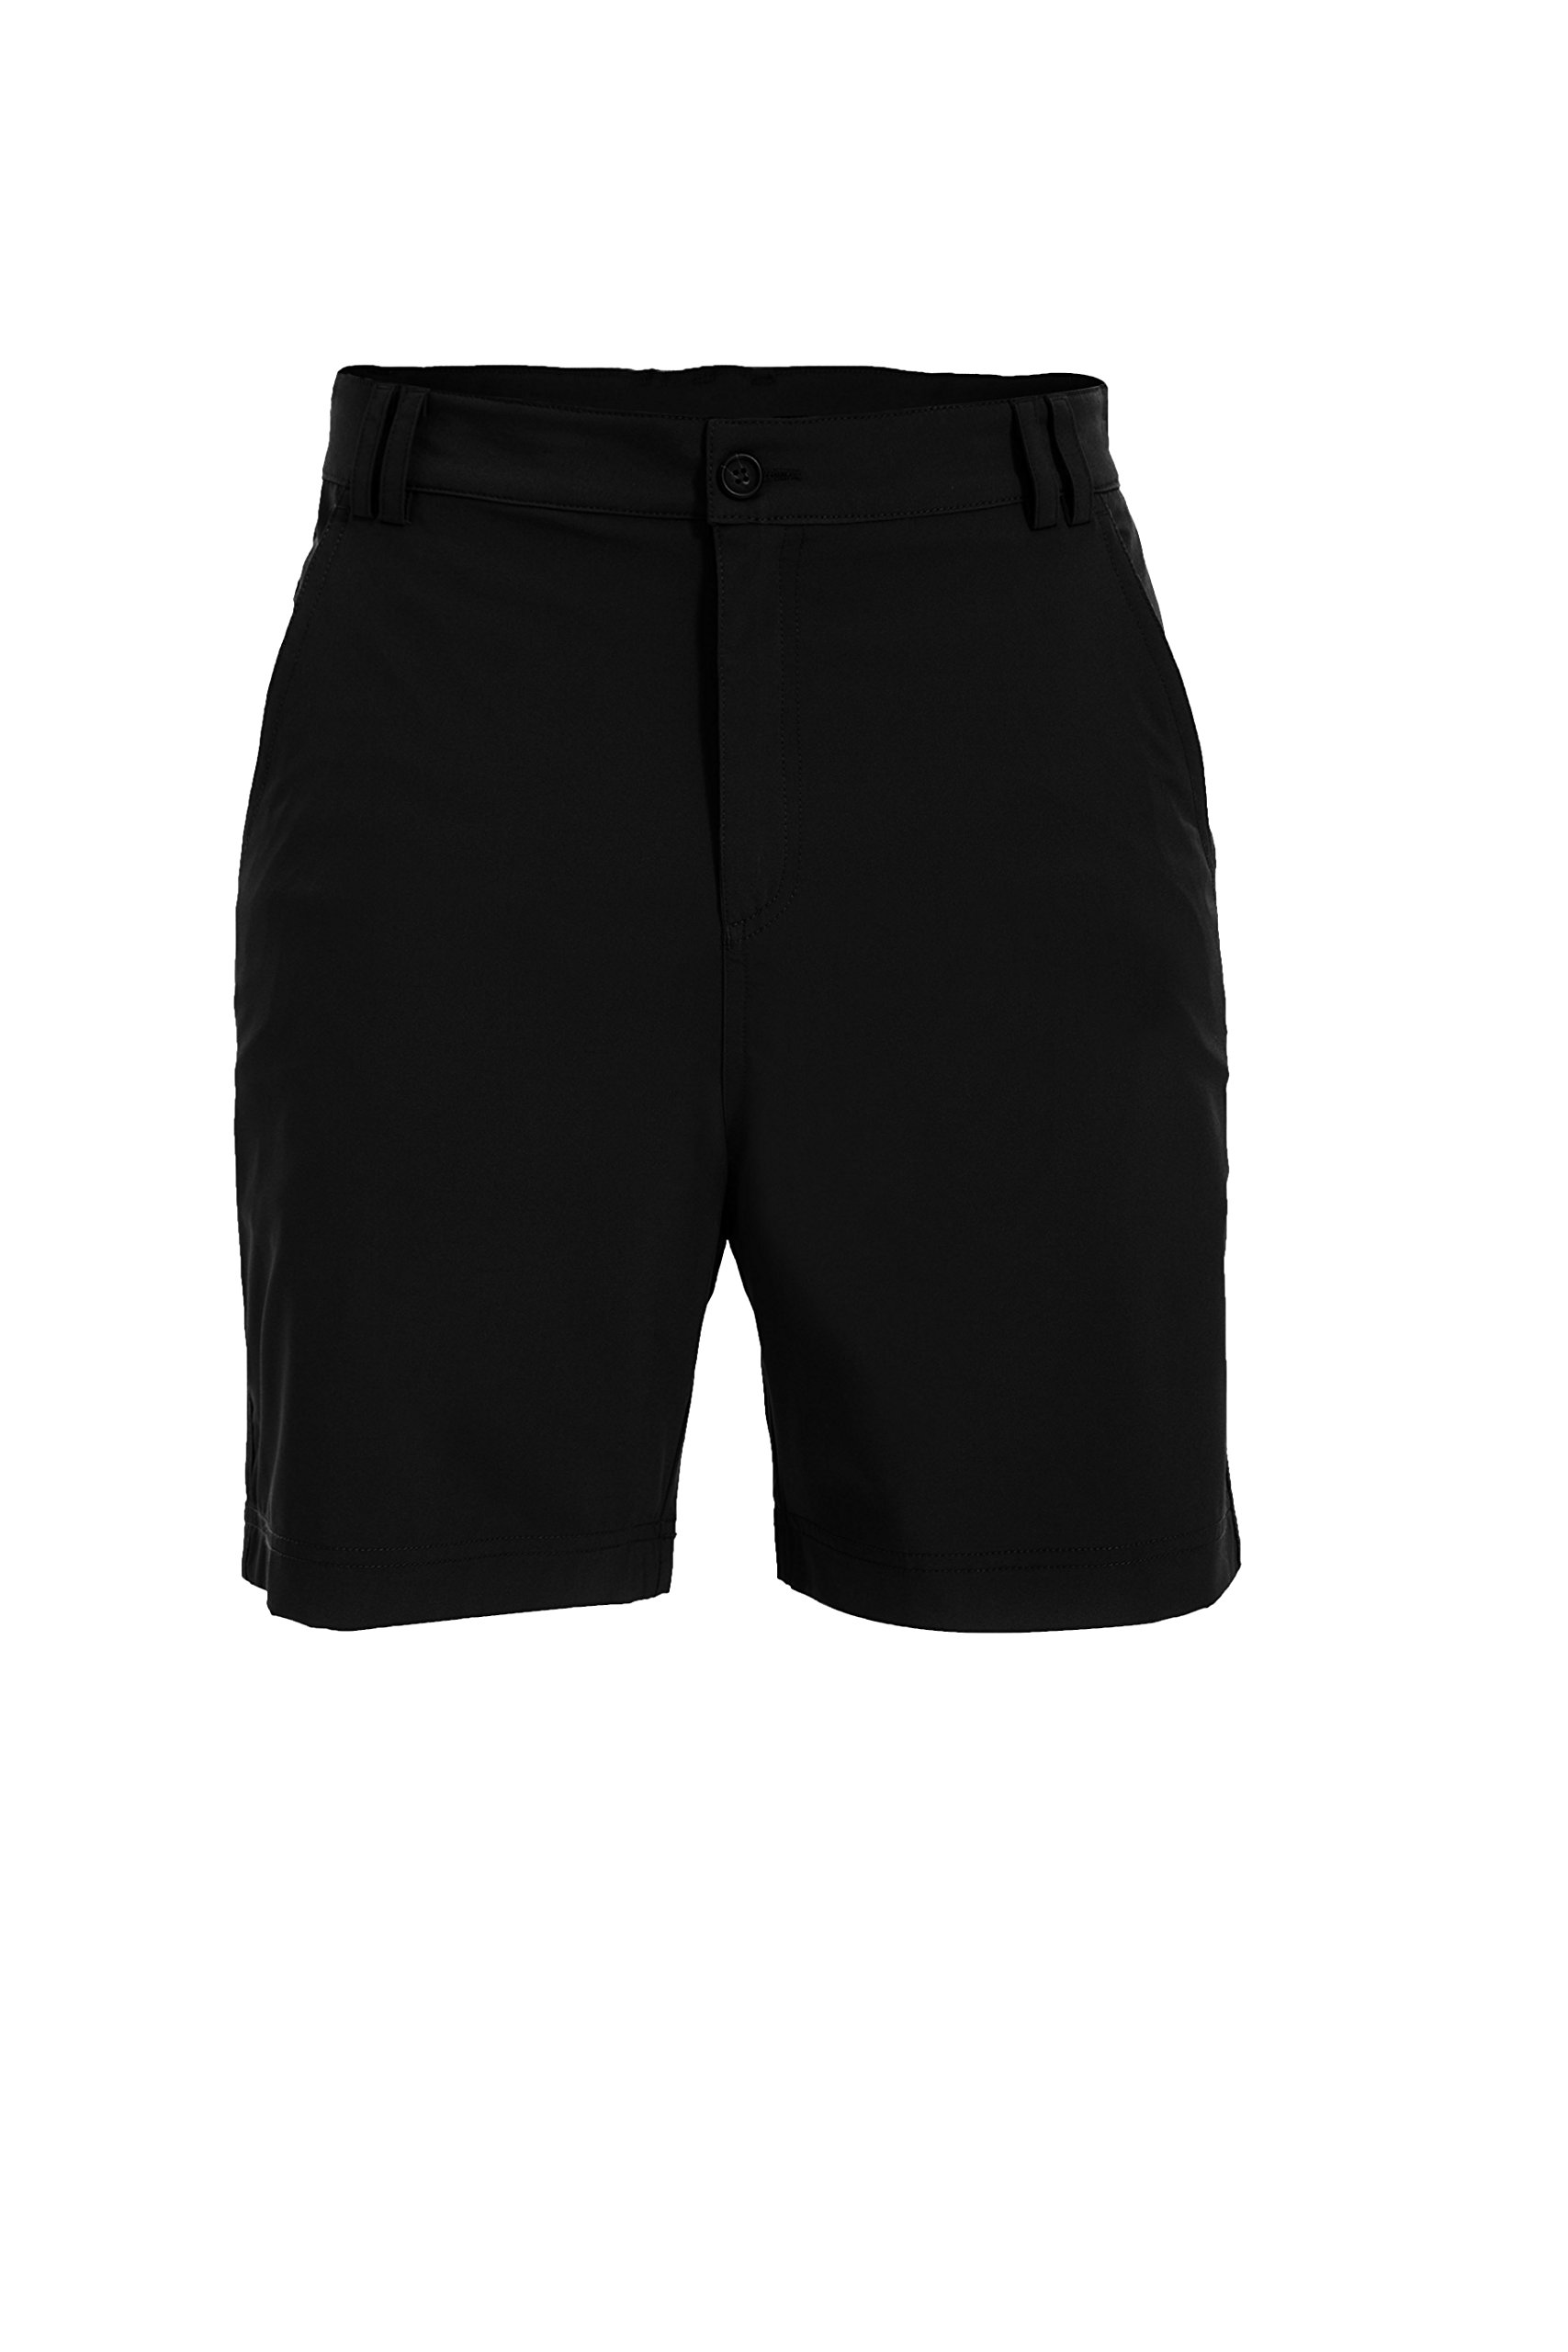 Trailside Supply Co. Big Boys' Ripstop Basic Stretchy Casual Short-Black-16